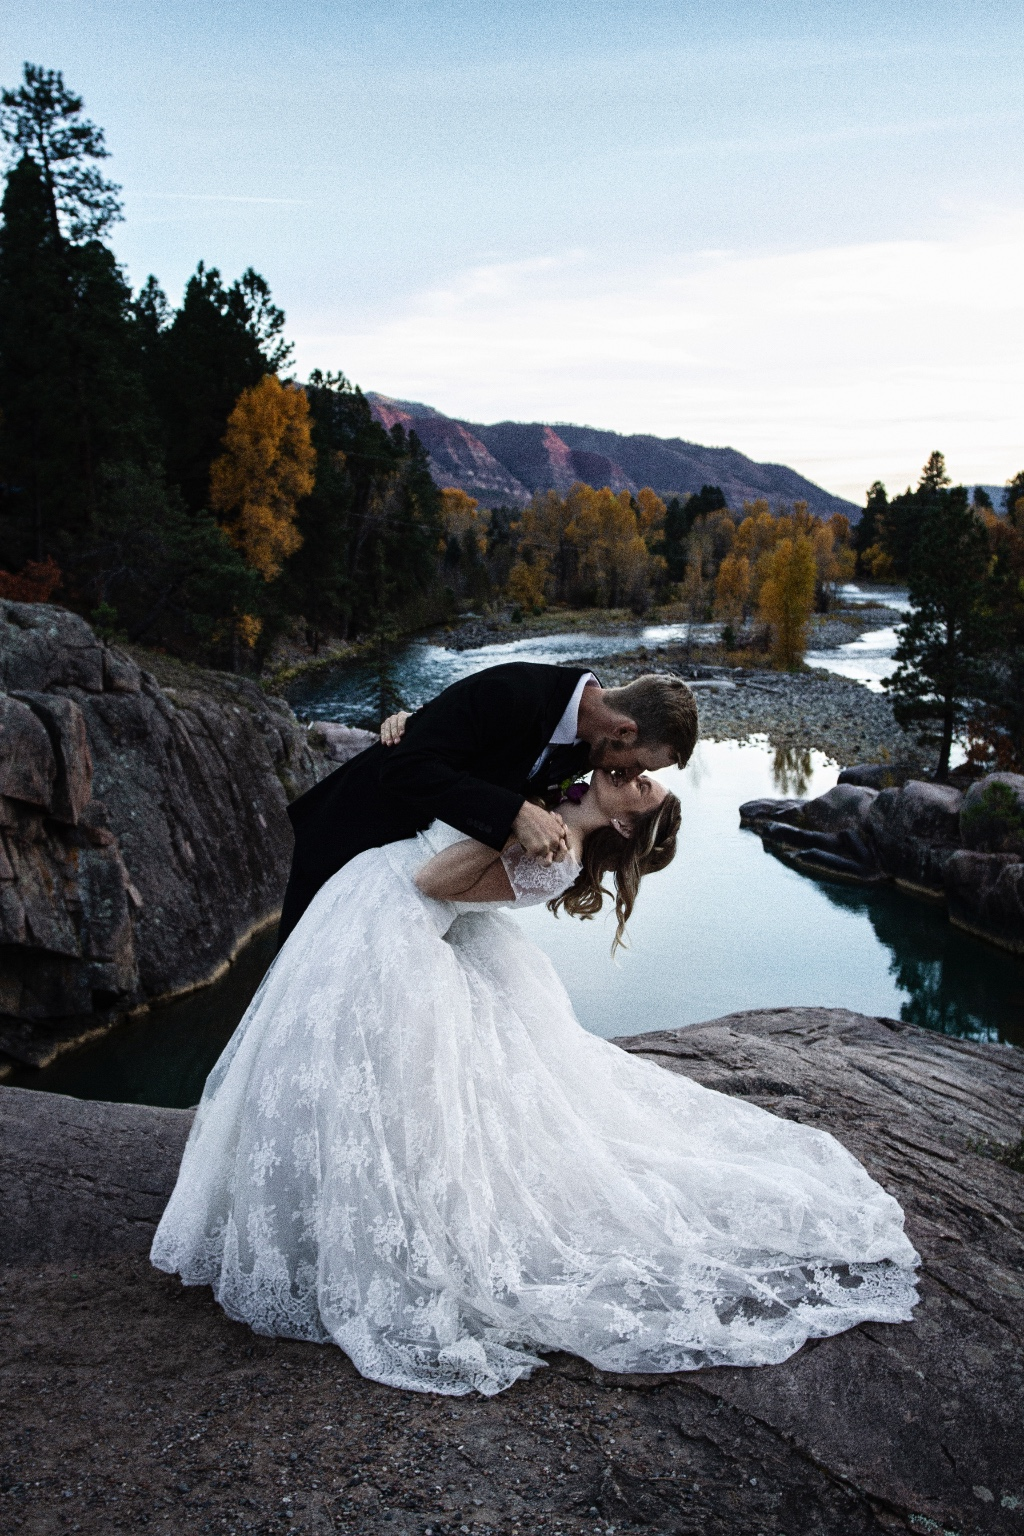 Kira and Beau, mid smile and kiss...overlooking Bakers Bridge in Durango, Colorado.